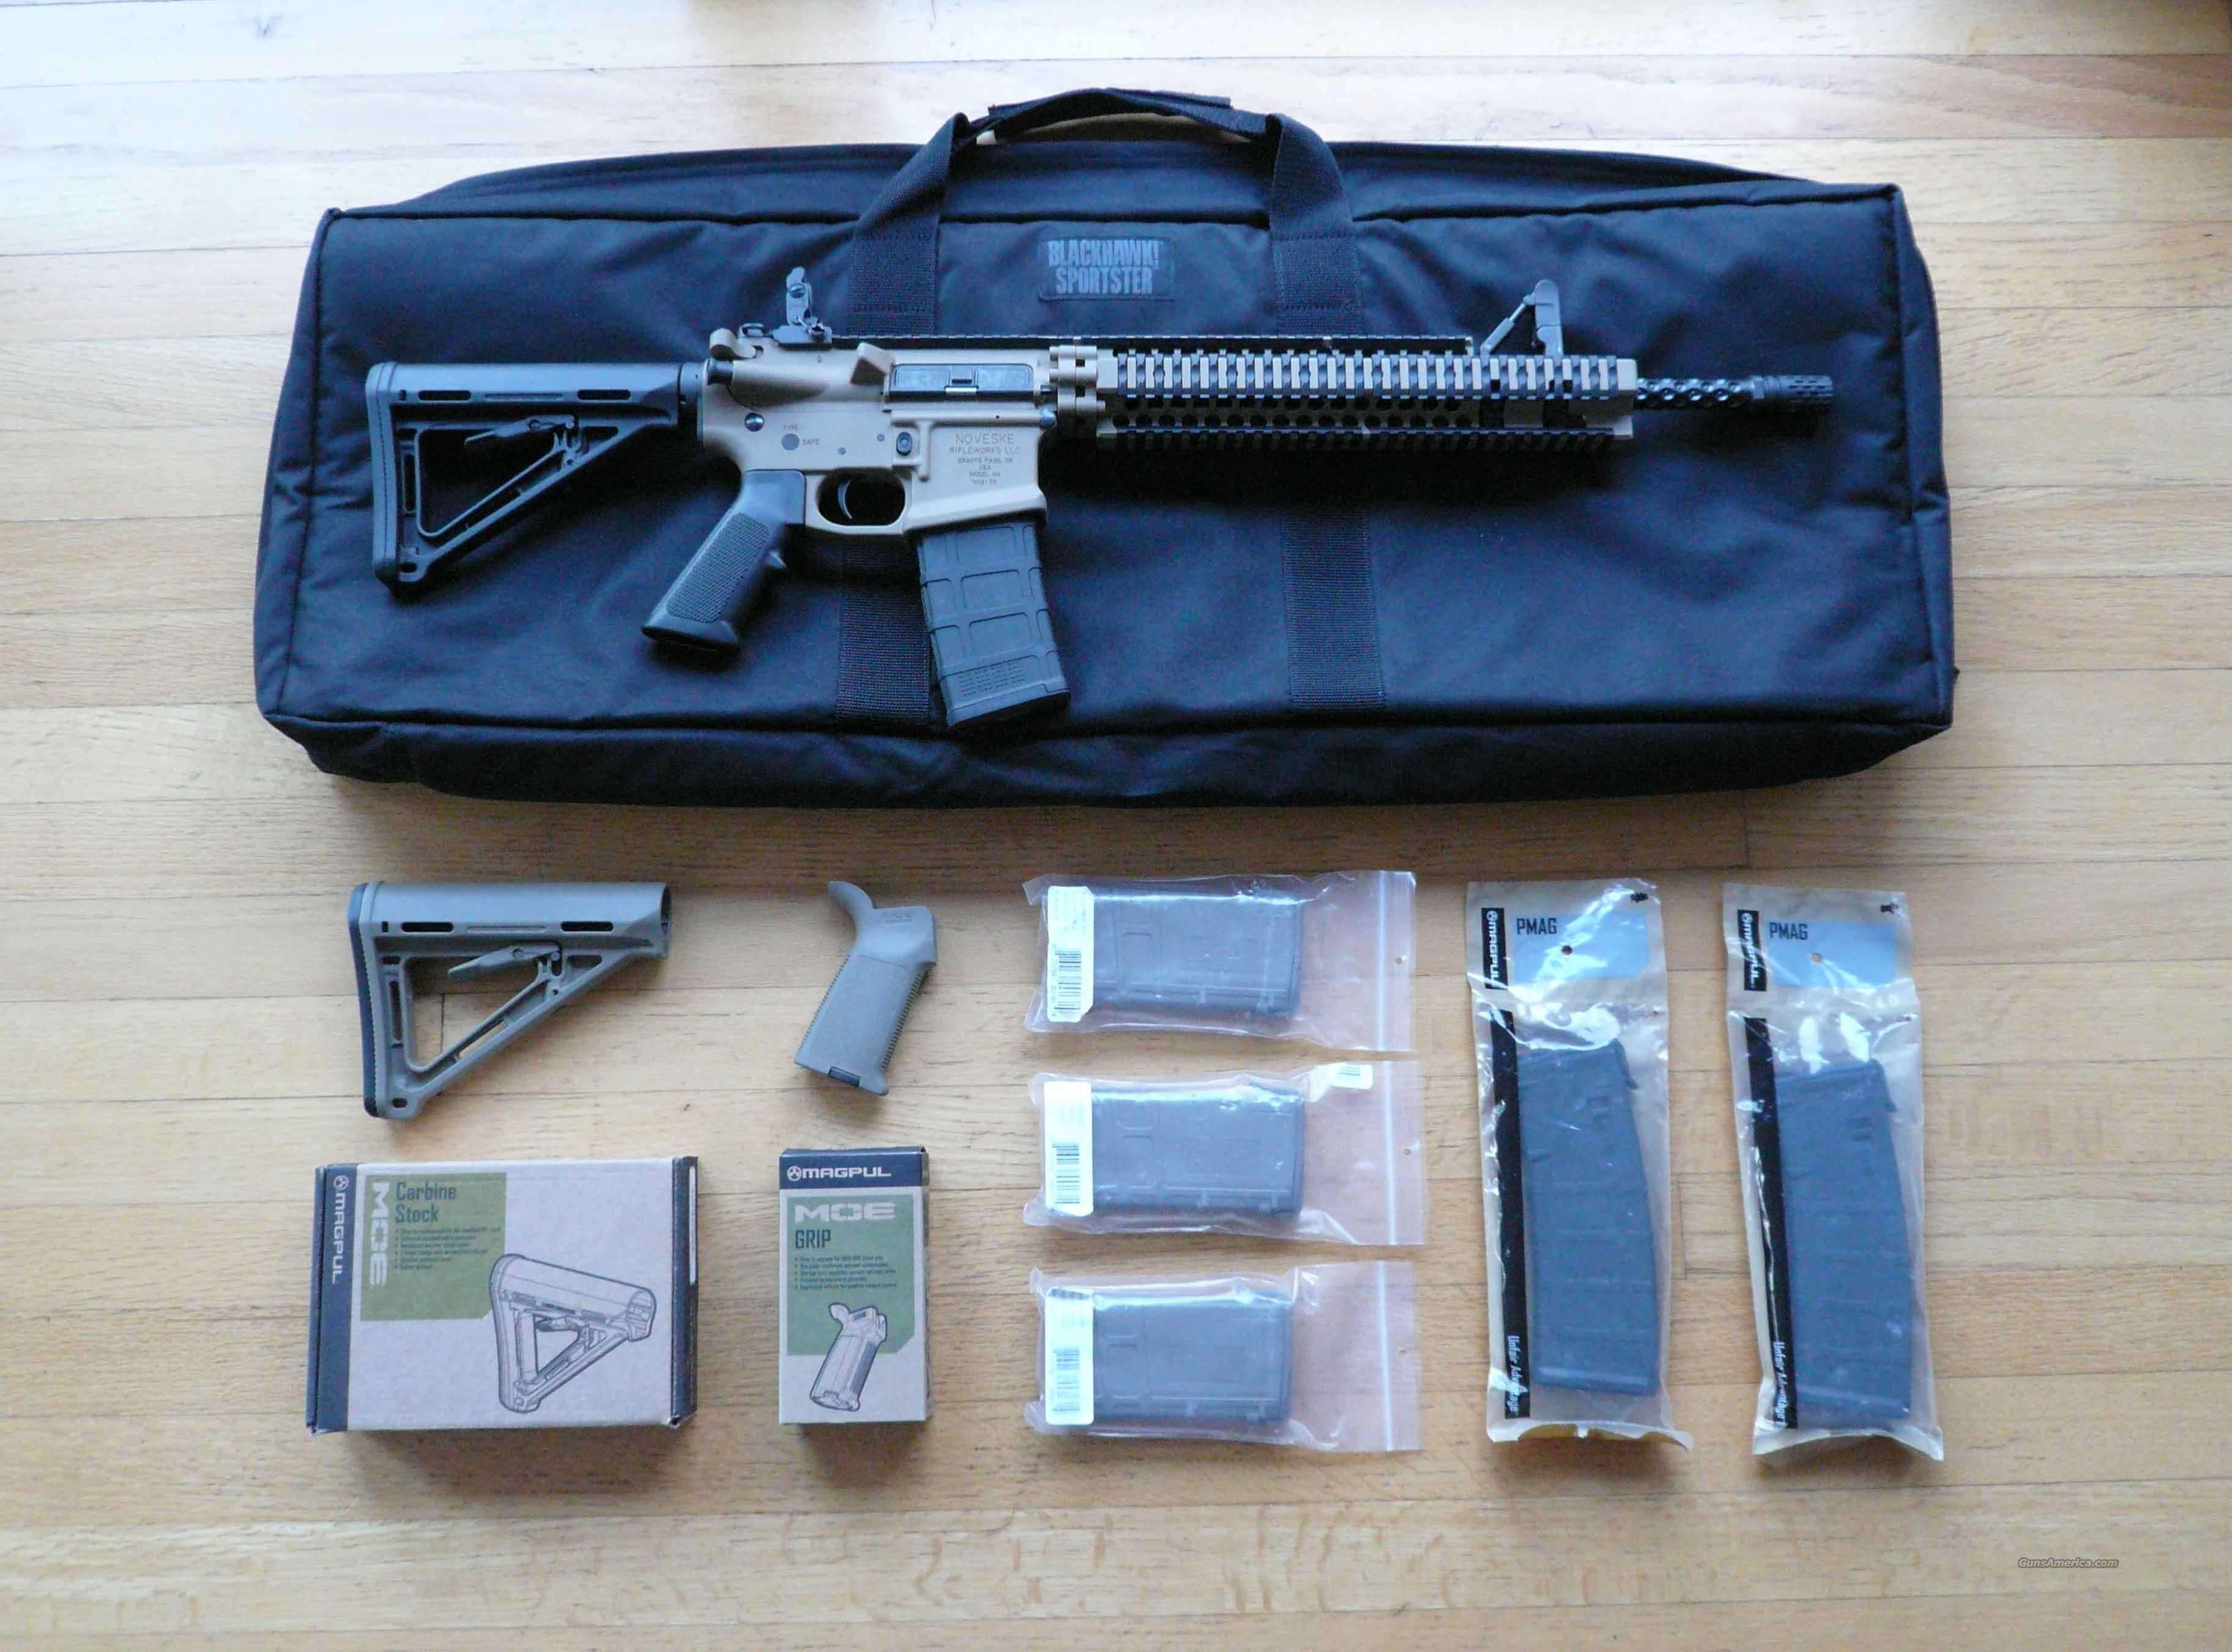 Noveske .556X45 NATO / .223 (New Unfired) Custom   Guns > Rifles > AR-15 Rifles - Small Manufacturers > Complete Rifle